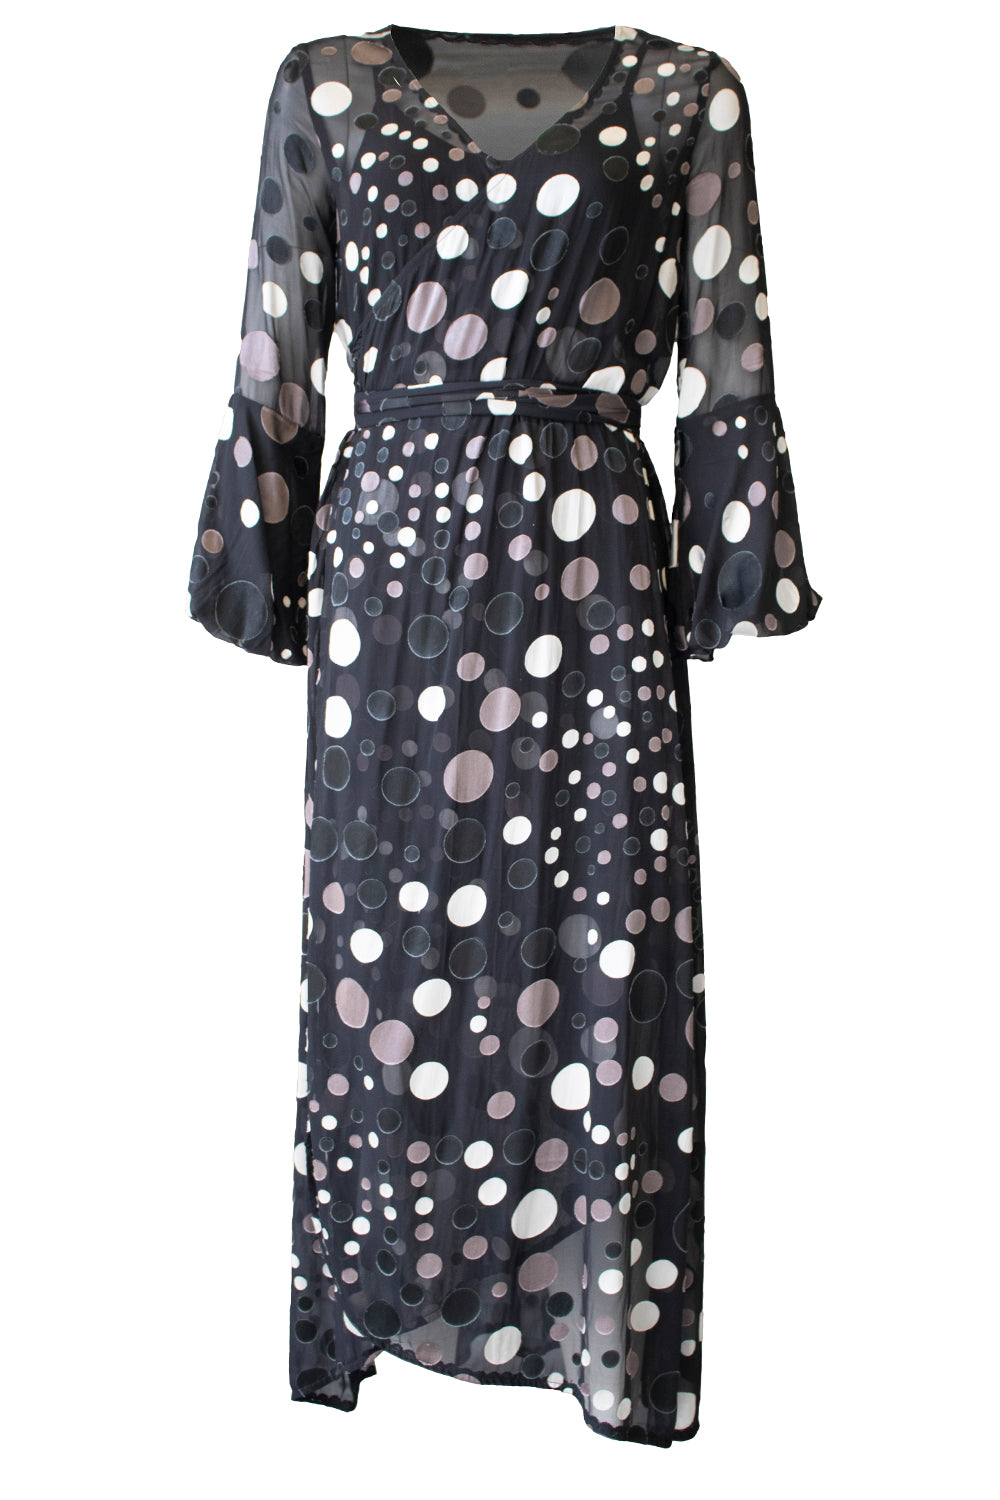 Dotty Entourage Dress